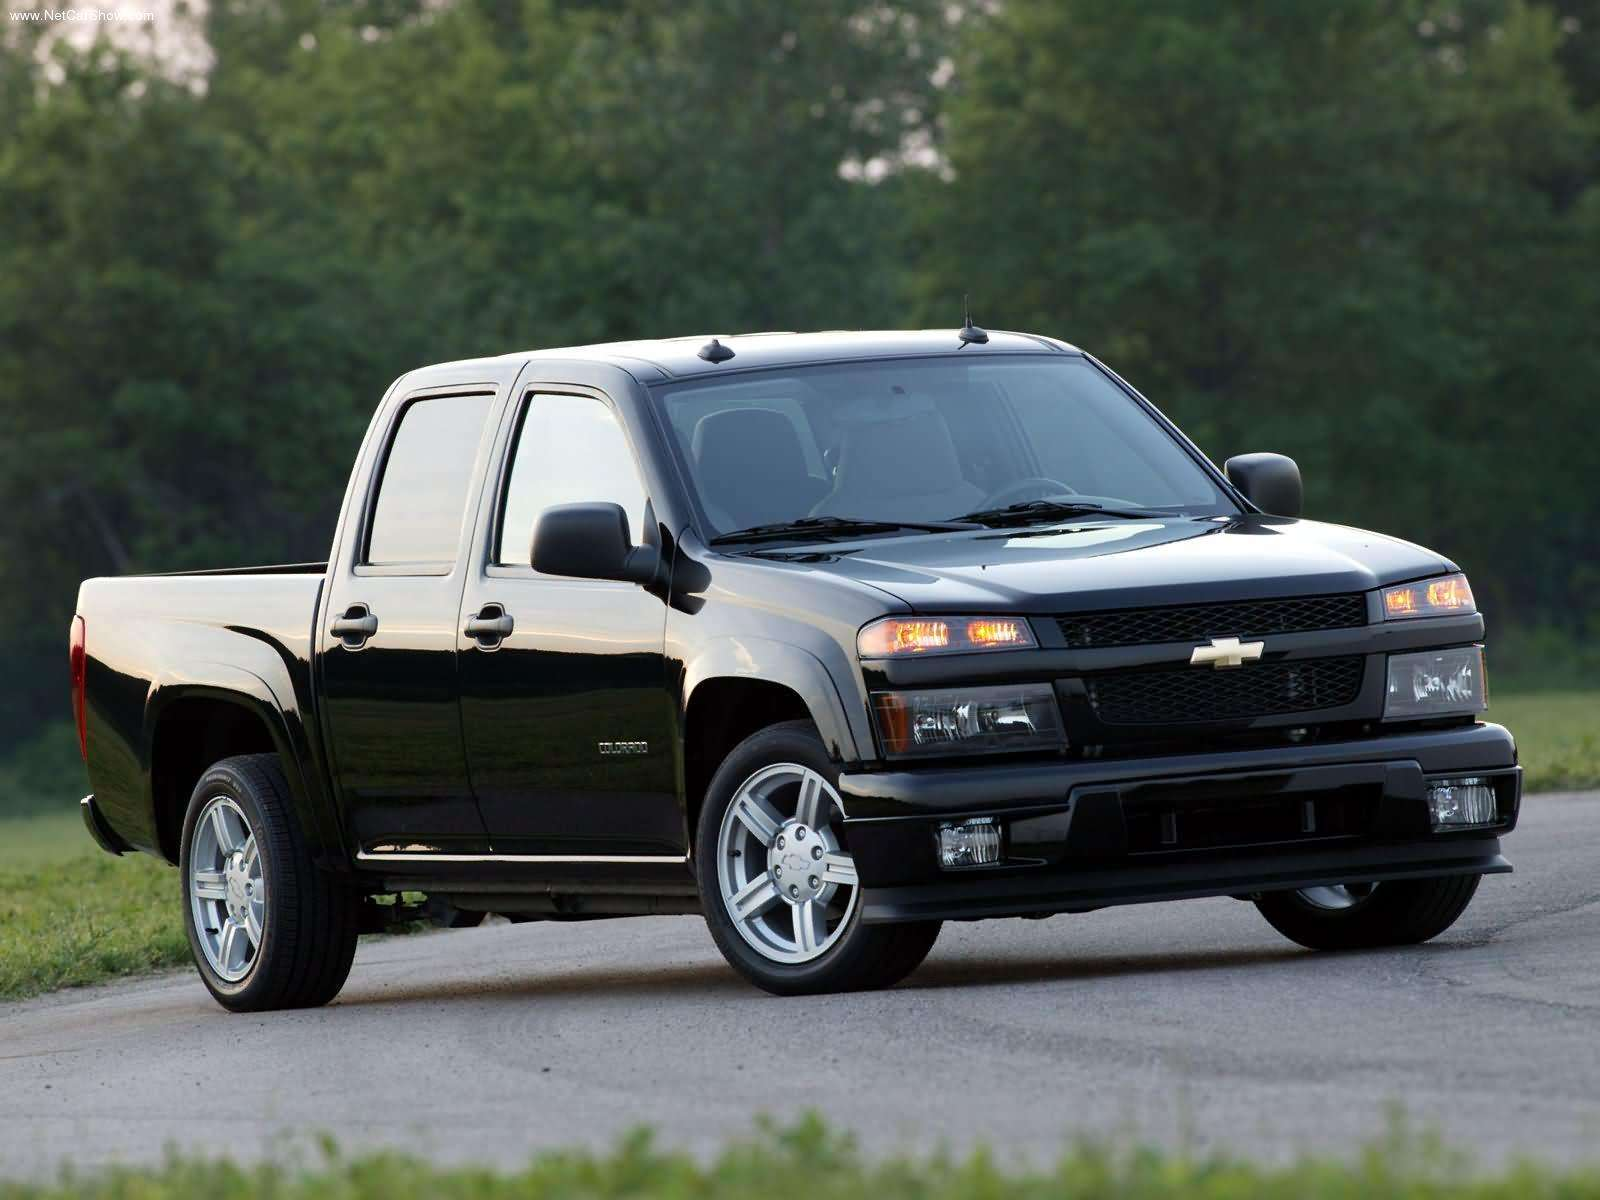 Chevrolet Colorado photo 08